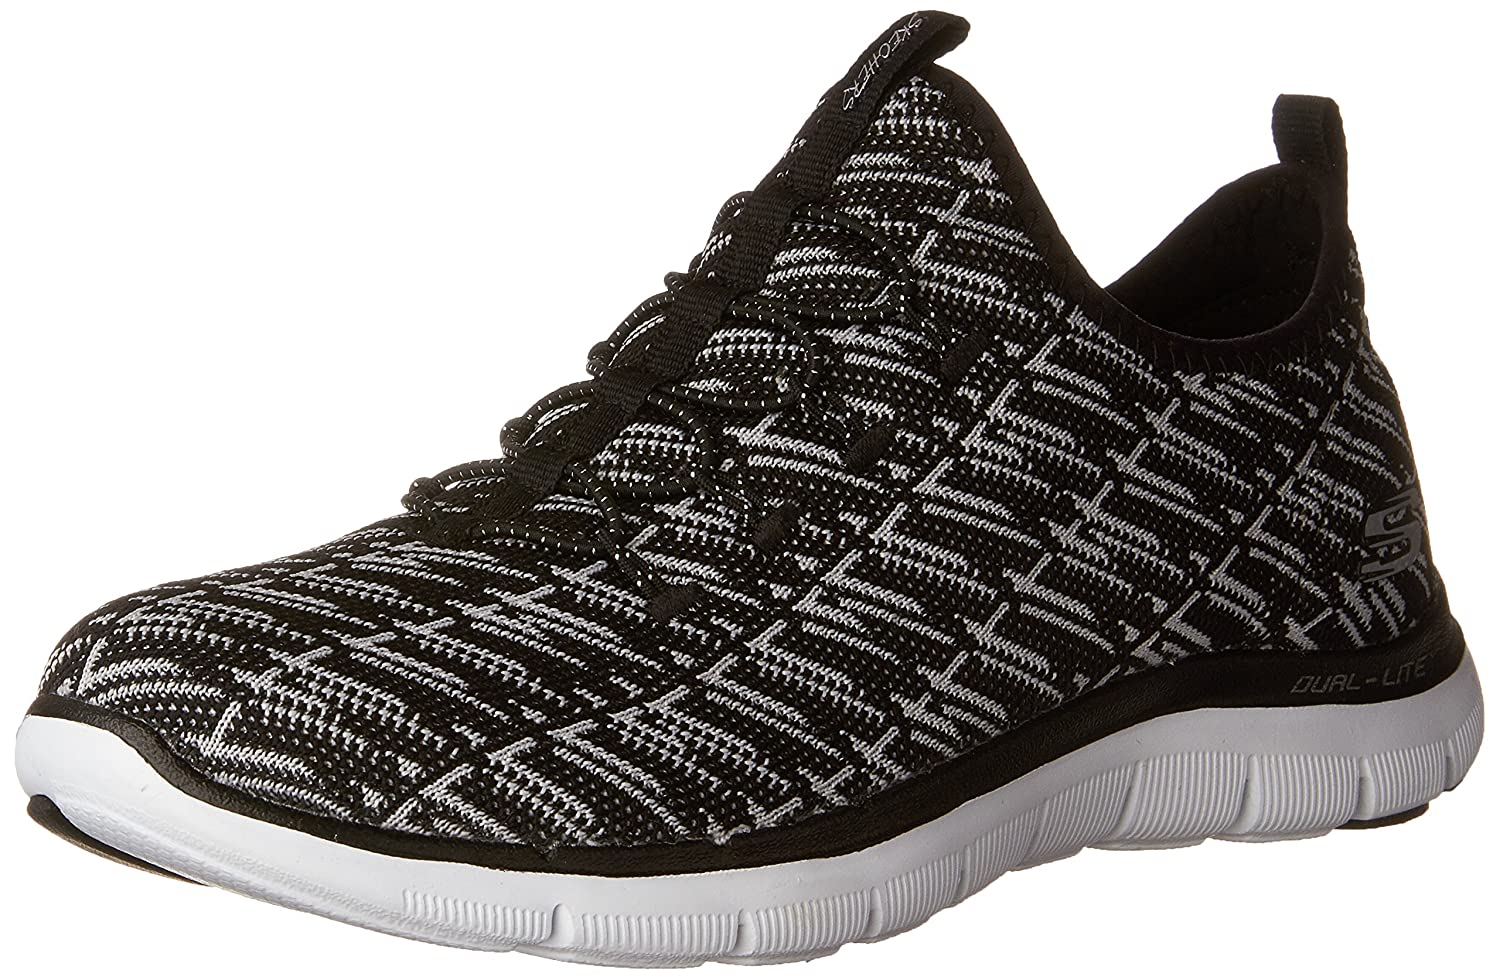 Skechers Women's Flex Appeal 2.0 Insight Sneaker B01IVND7YI 9.5 B(M) US|Black/White